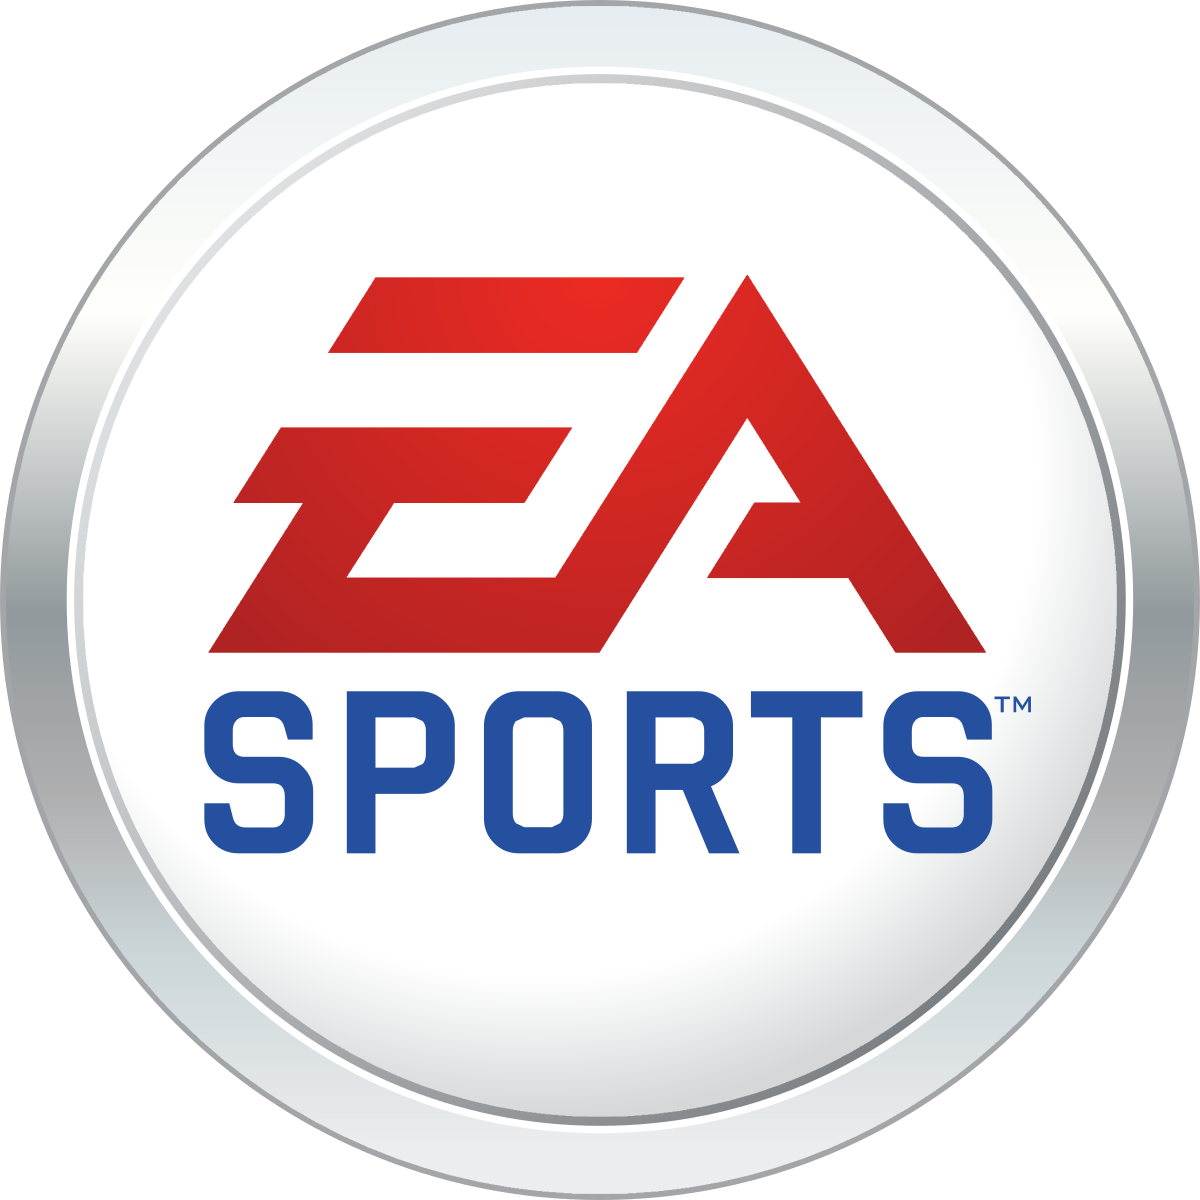 EA_Sports-logo.png